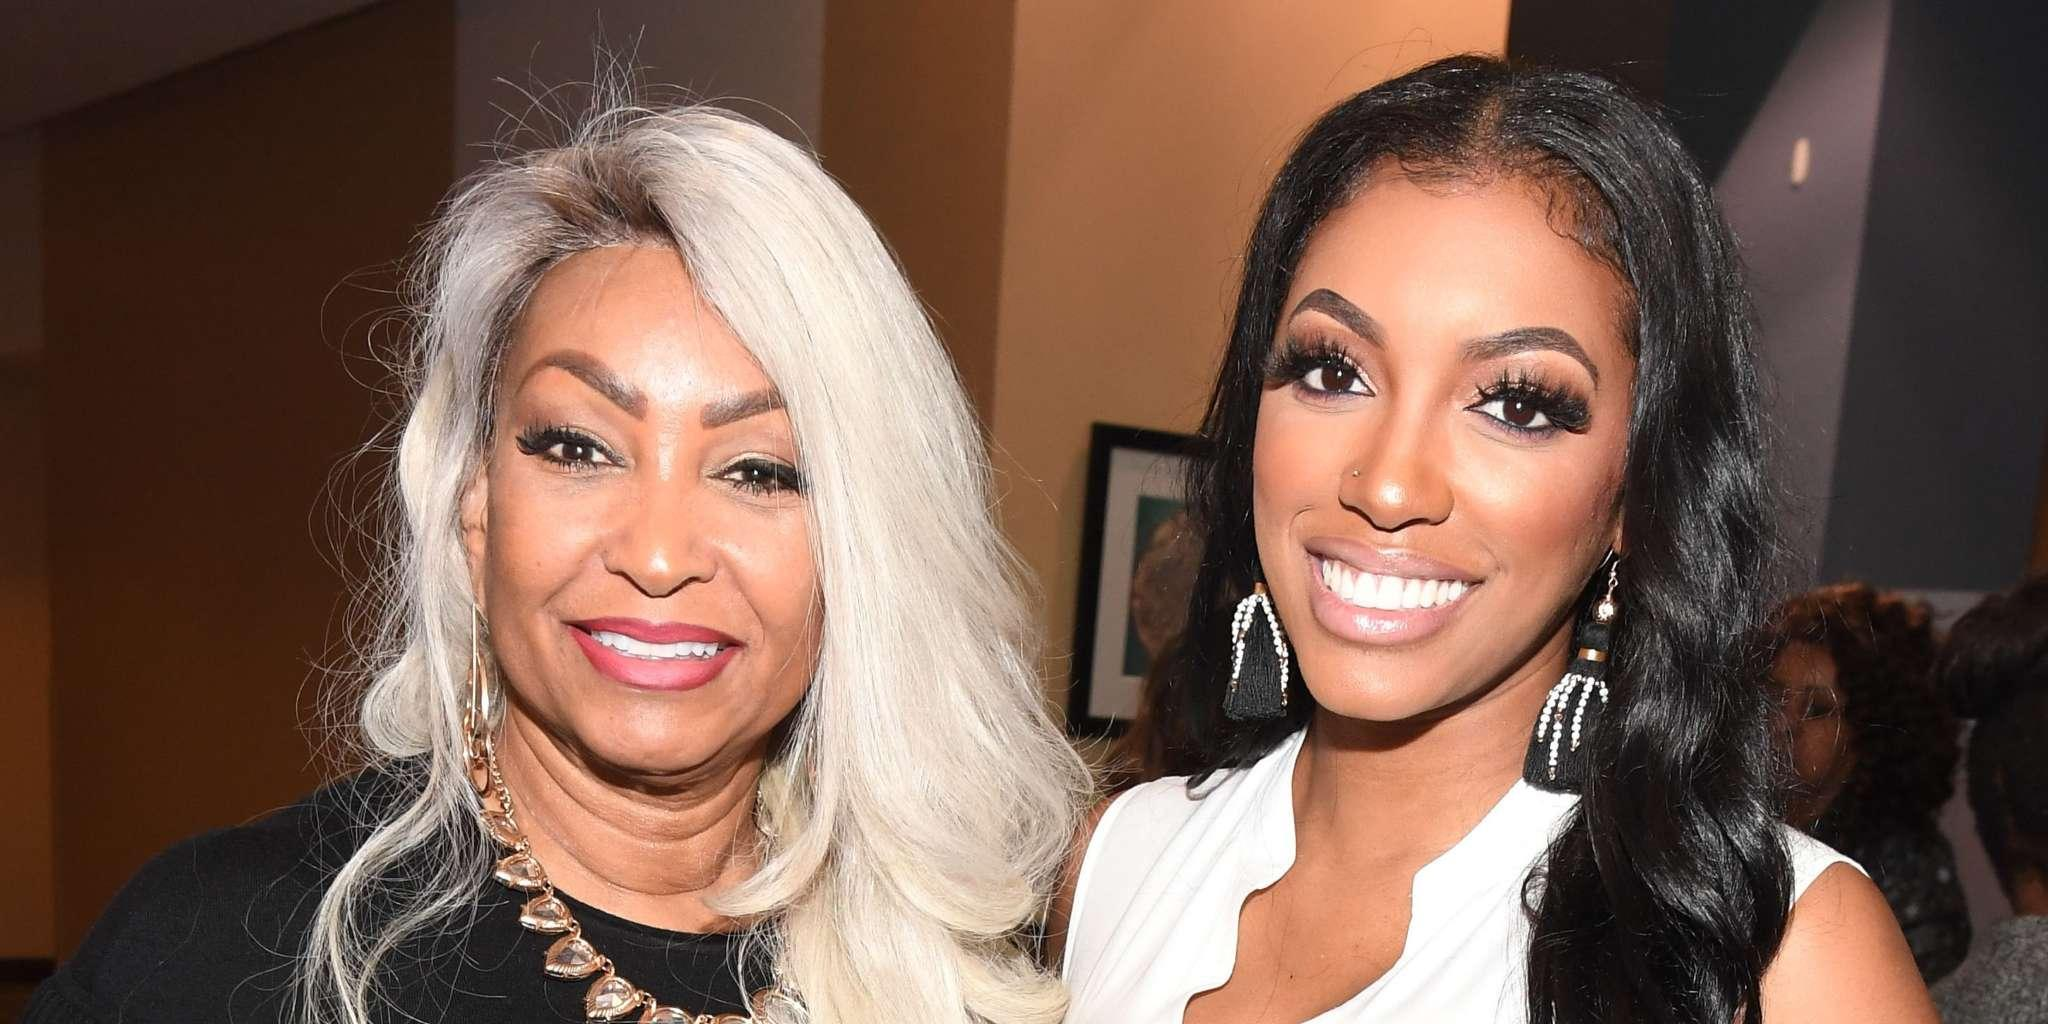 Porsha Williams Celebrates The Birthday Of Her Mom's BF - Check Out Diane's Funny Video With Him